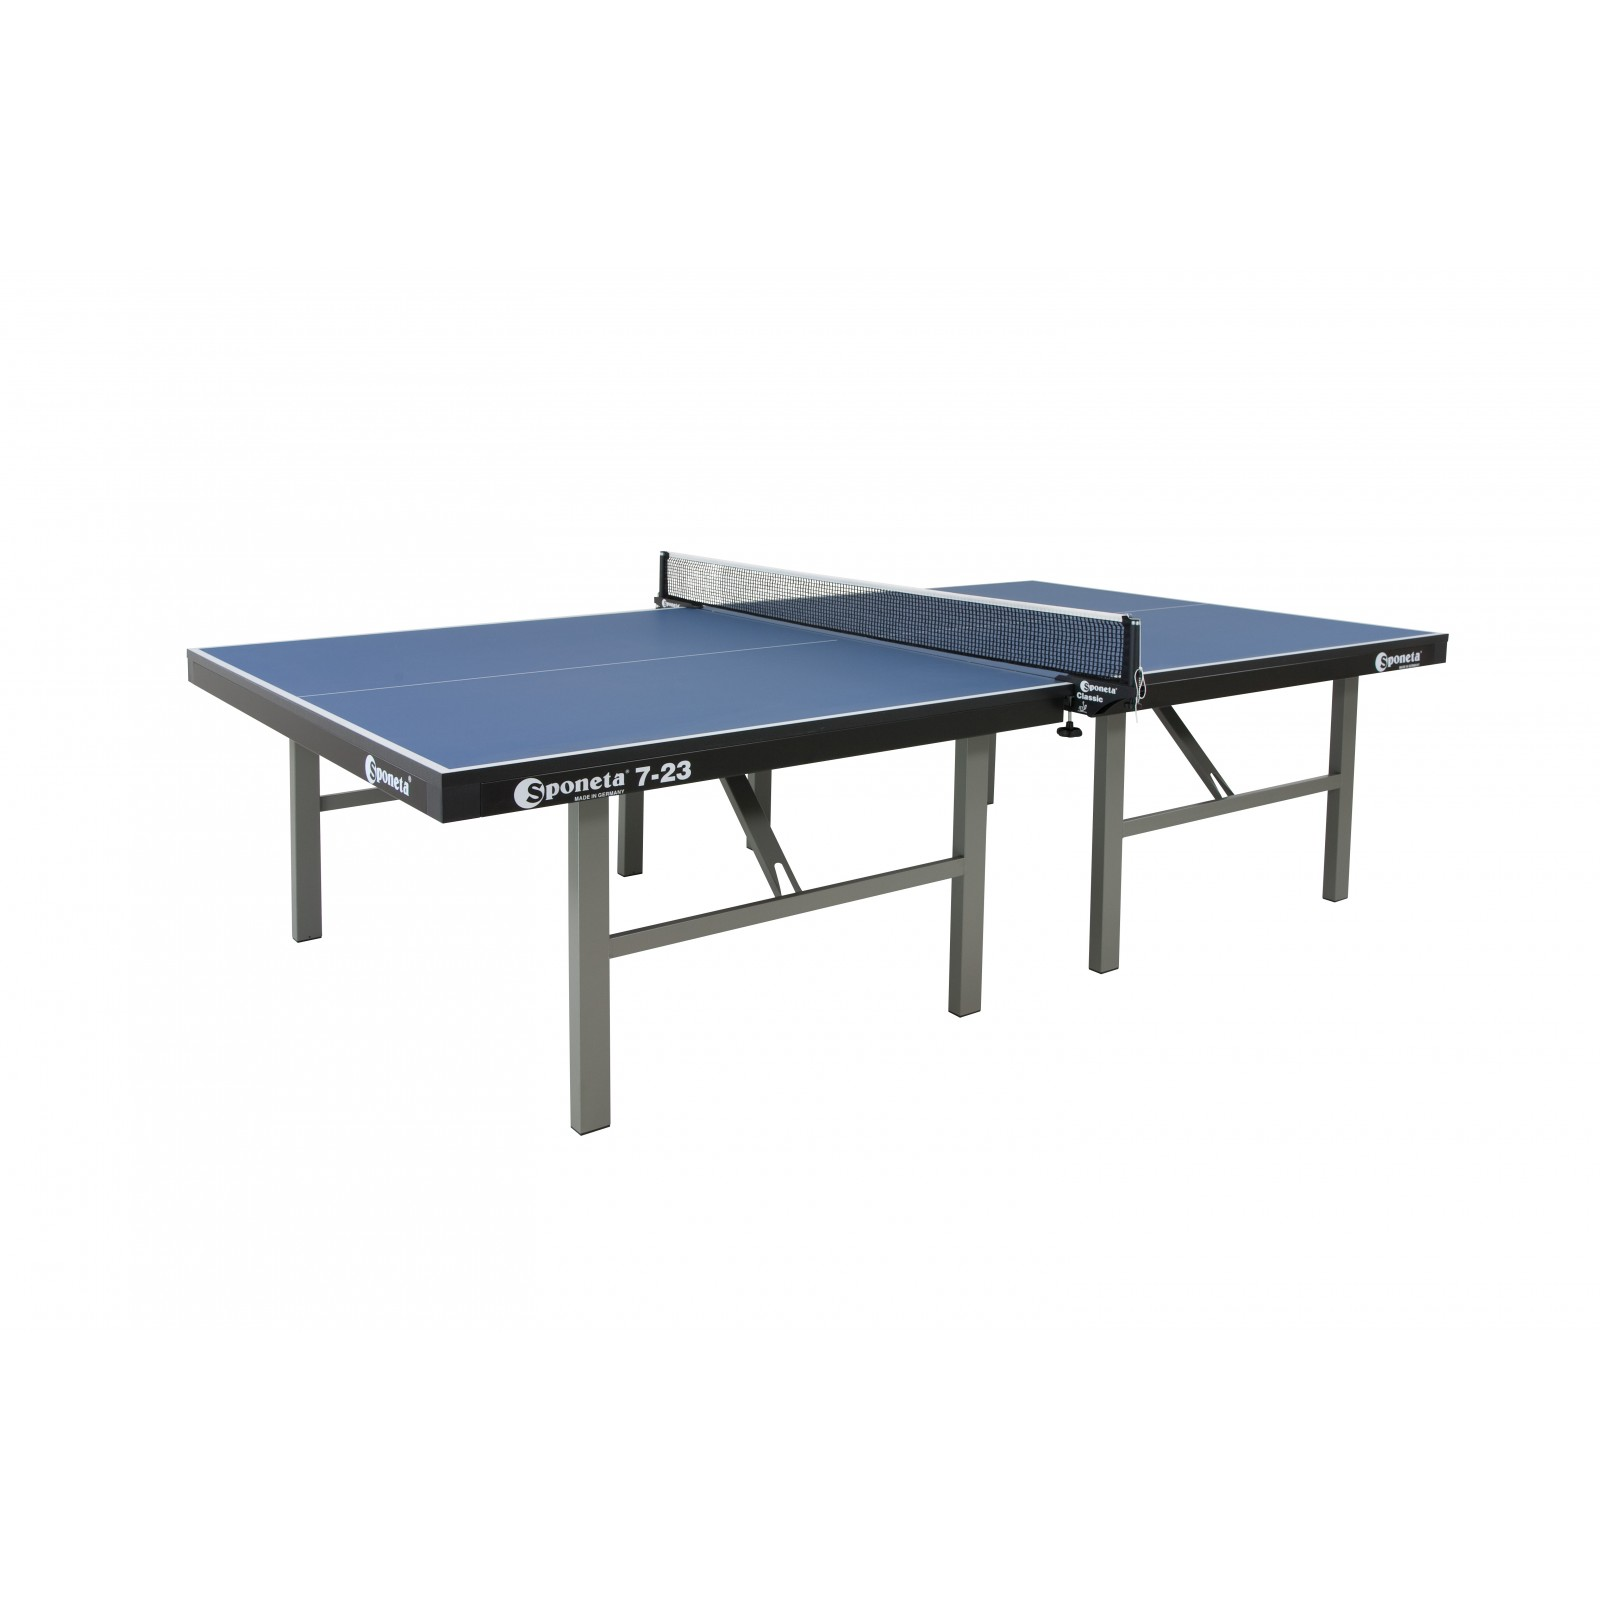 Sponeta table tennis table competition s7 22 green buy with 15 customer ratings sport tiedje - Sponeta table tennis table ...